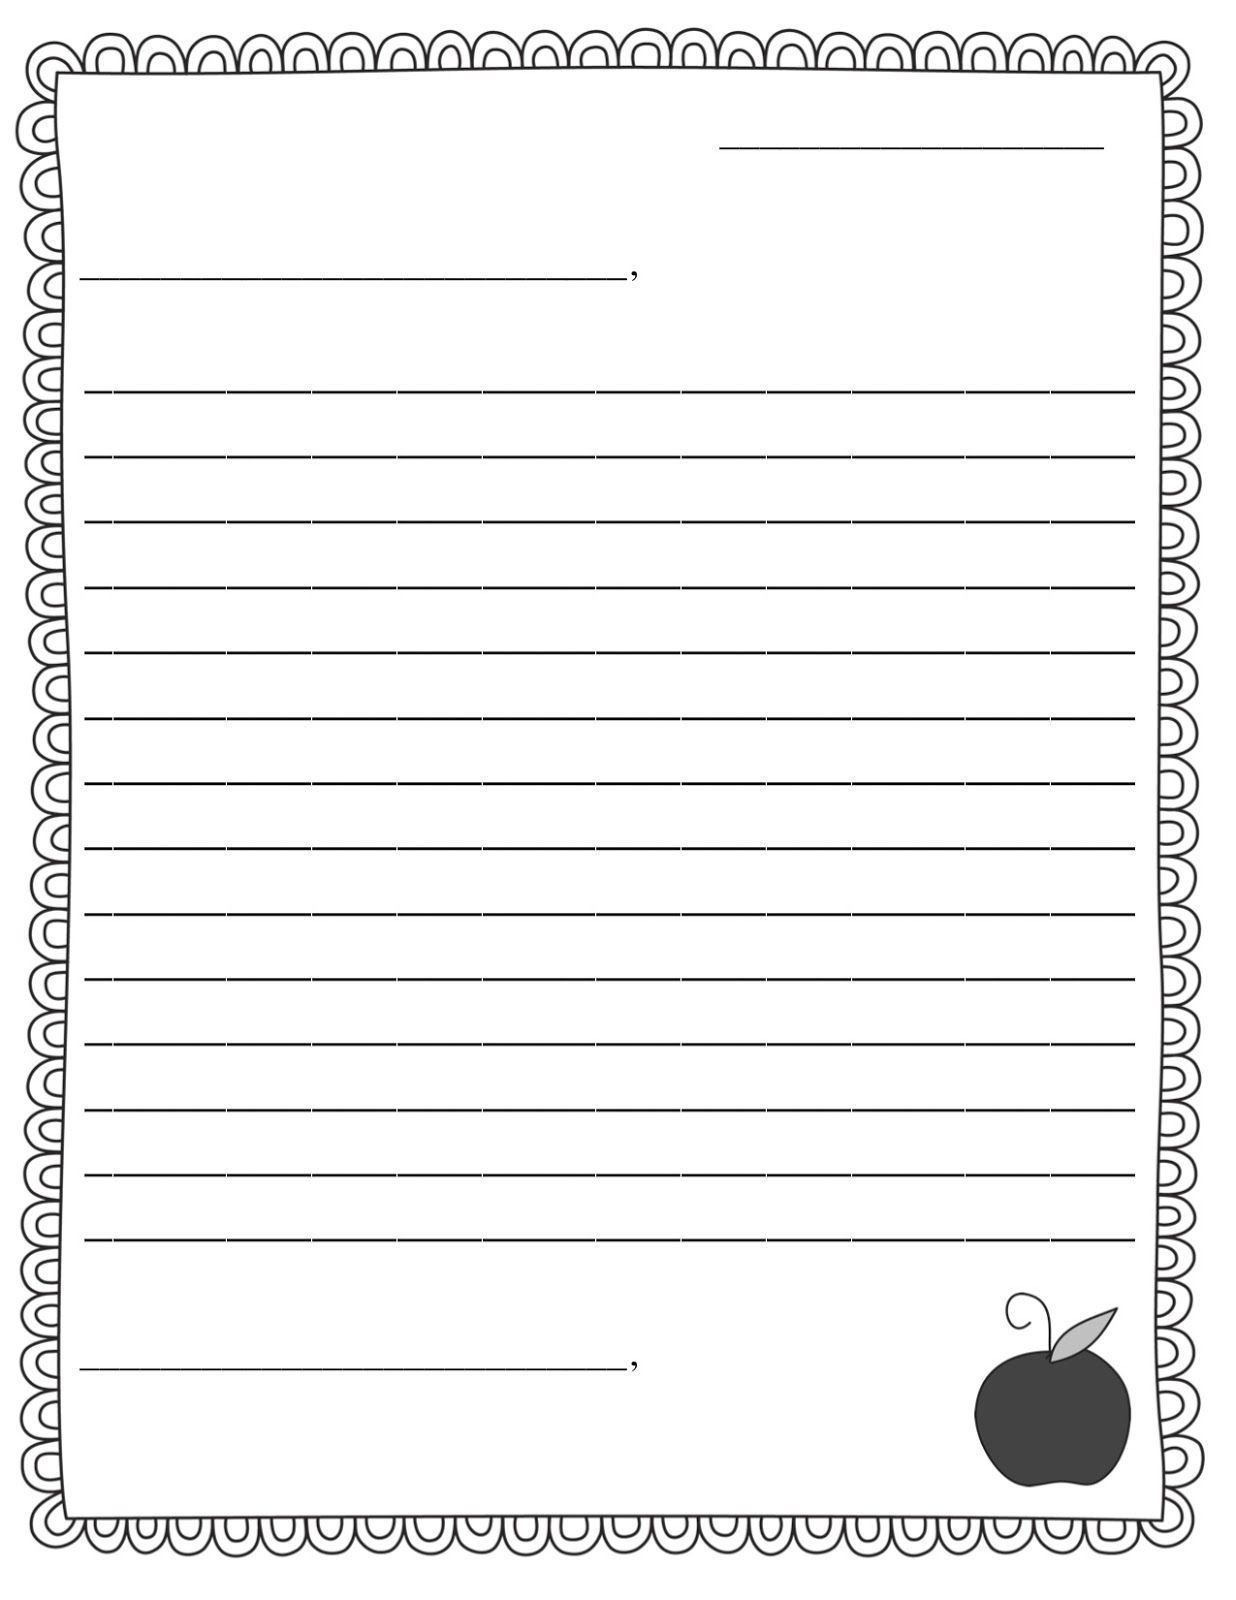 004 Marvelou Free Letter Writing Template For Student Photo  StudentsFull